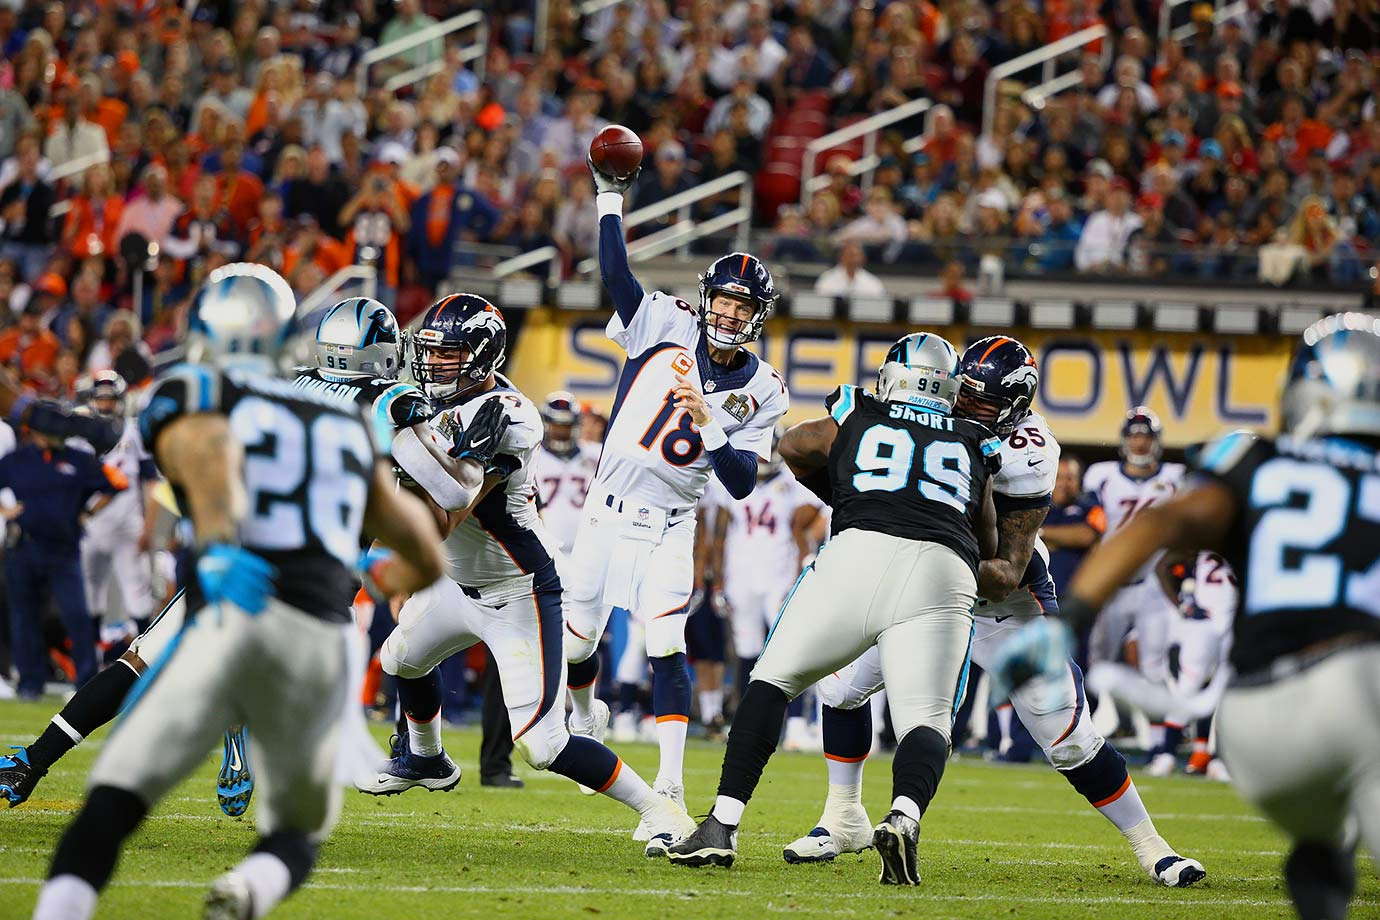 Peyton Manning completed just 13-of-23 passes for 141 yards with an interception.